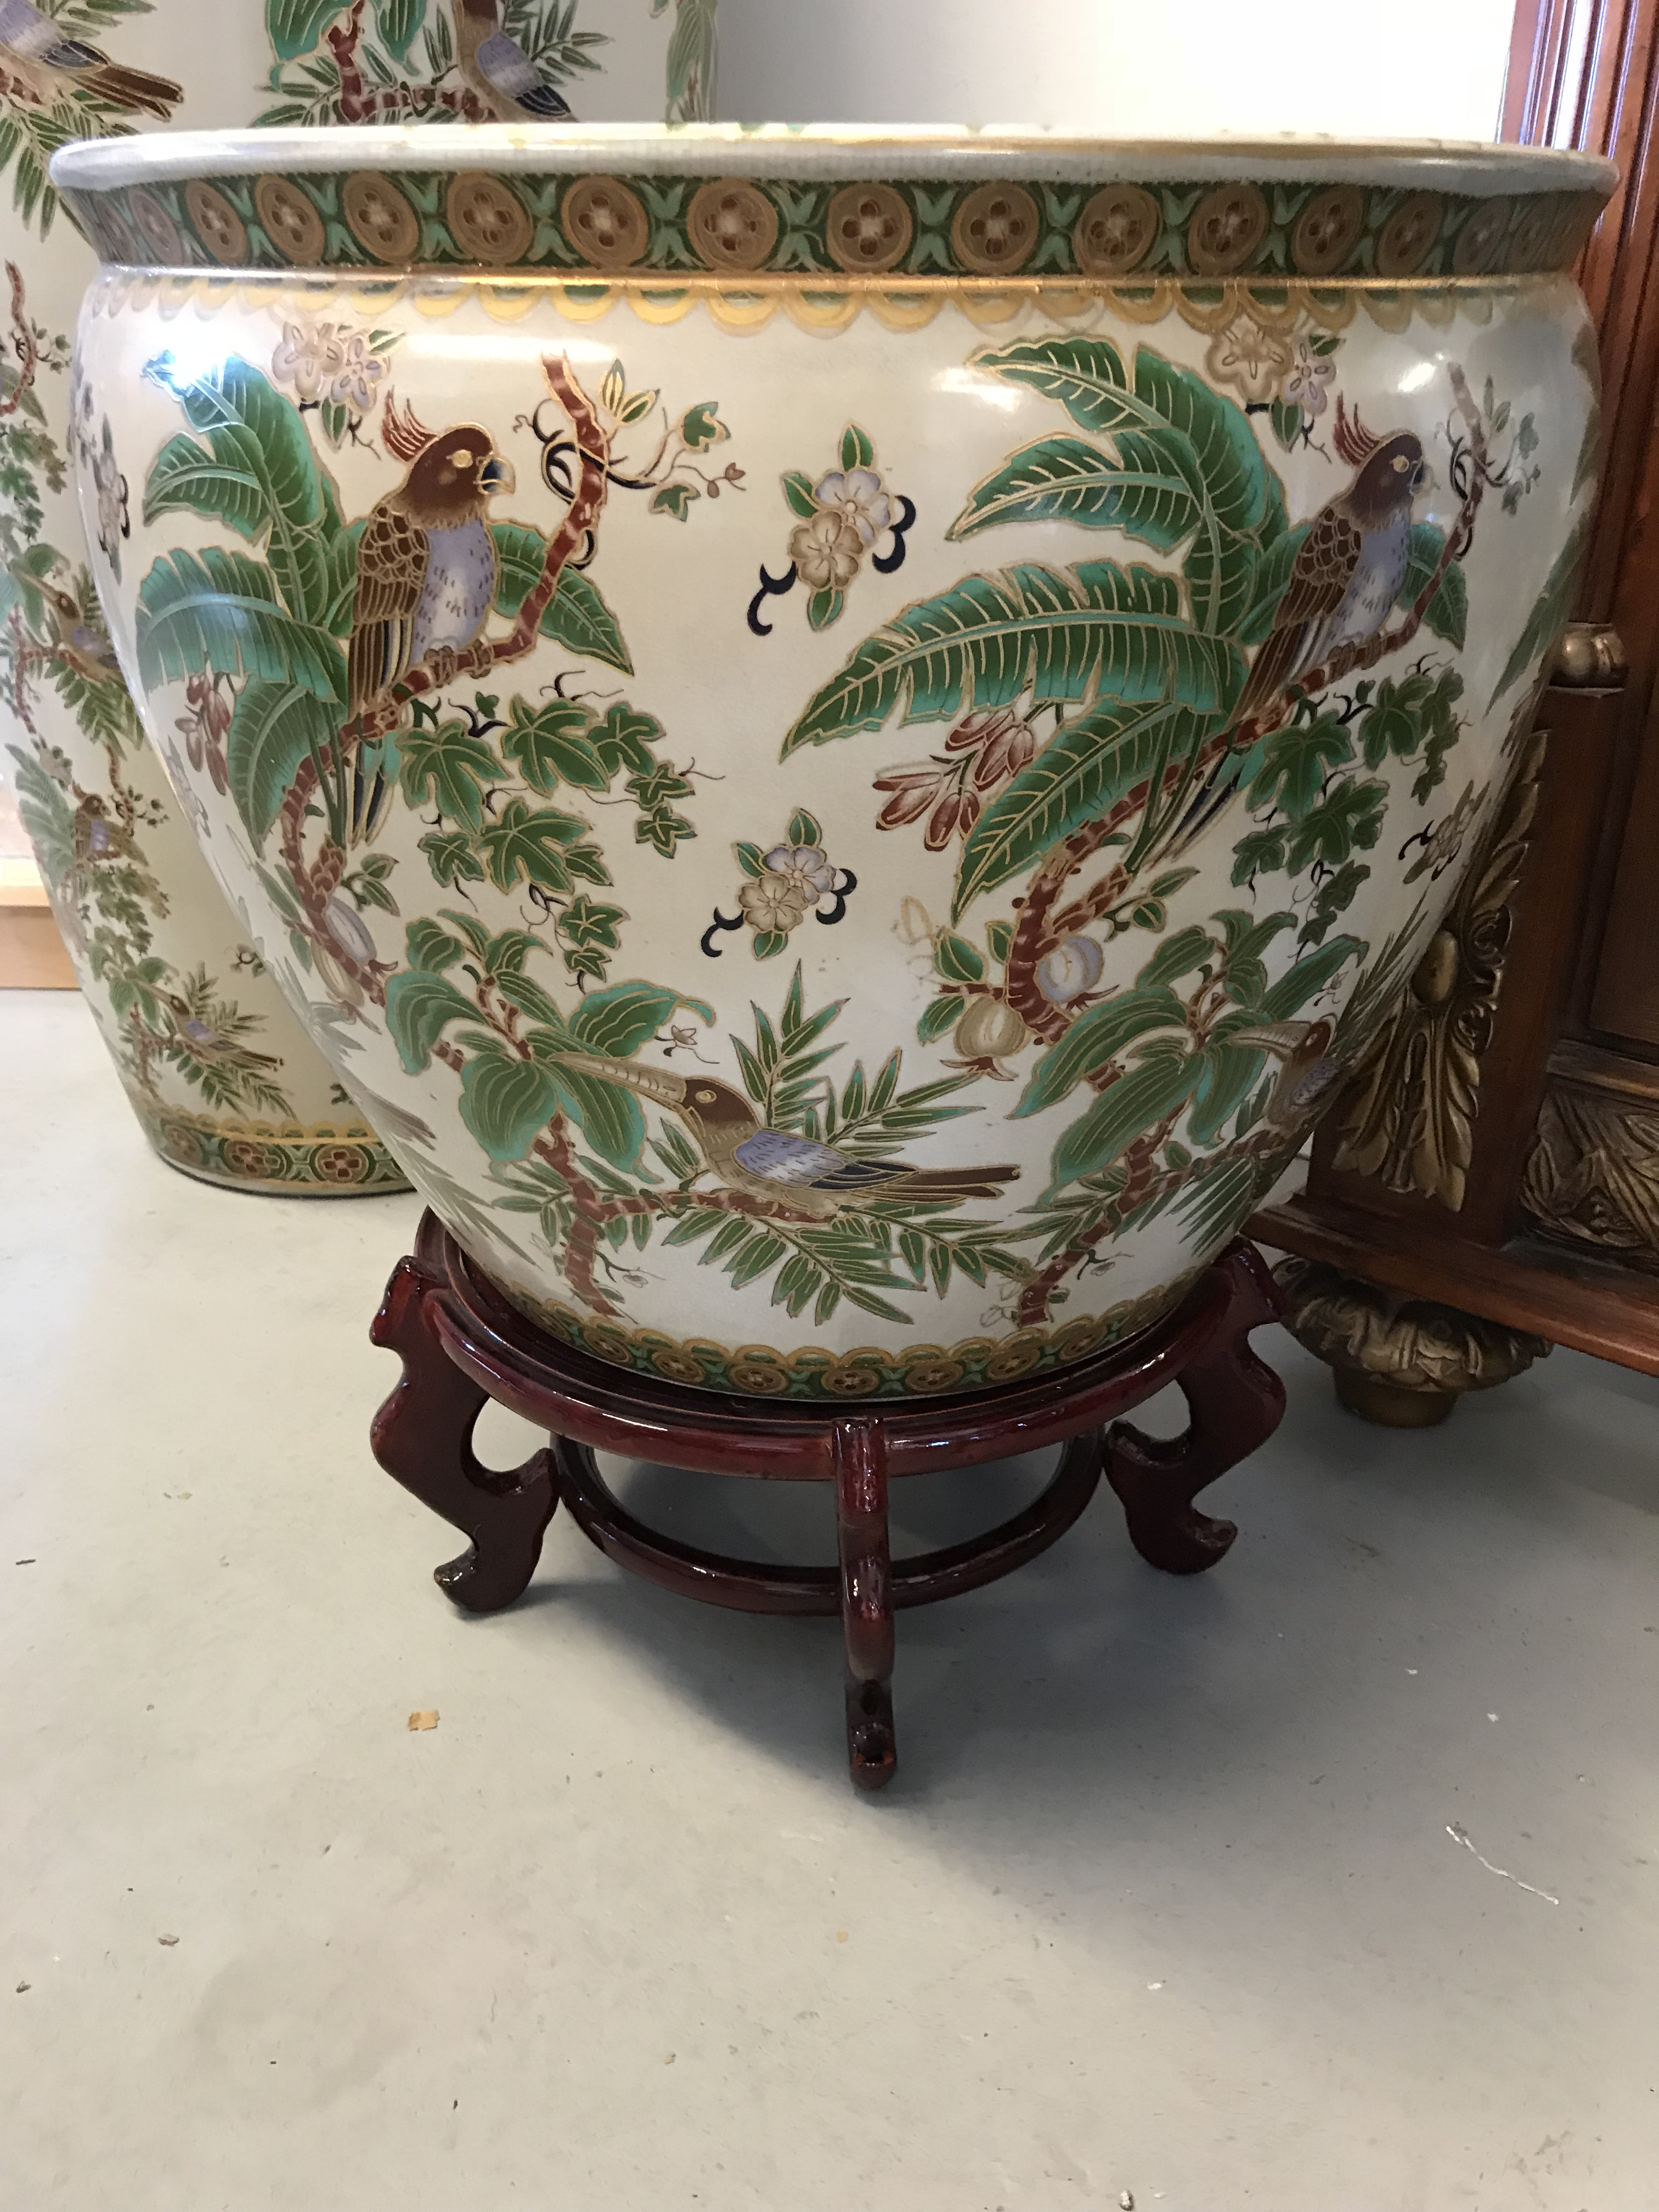 Asian Fish Motif Bowl With Hand Painted Birds In Door Or Garden Use